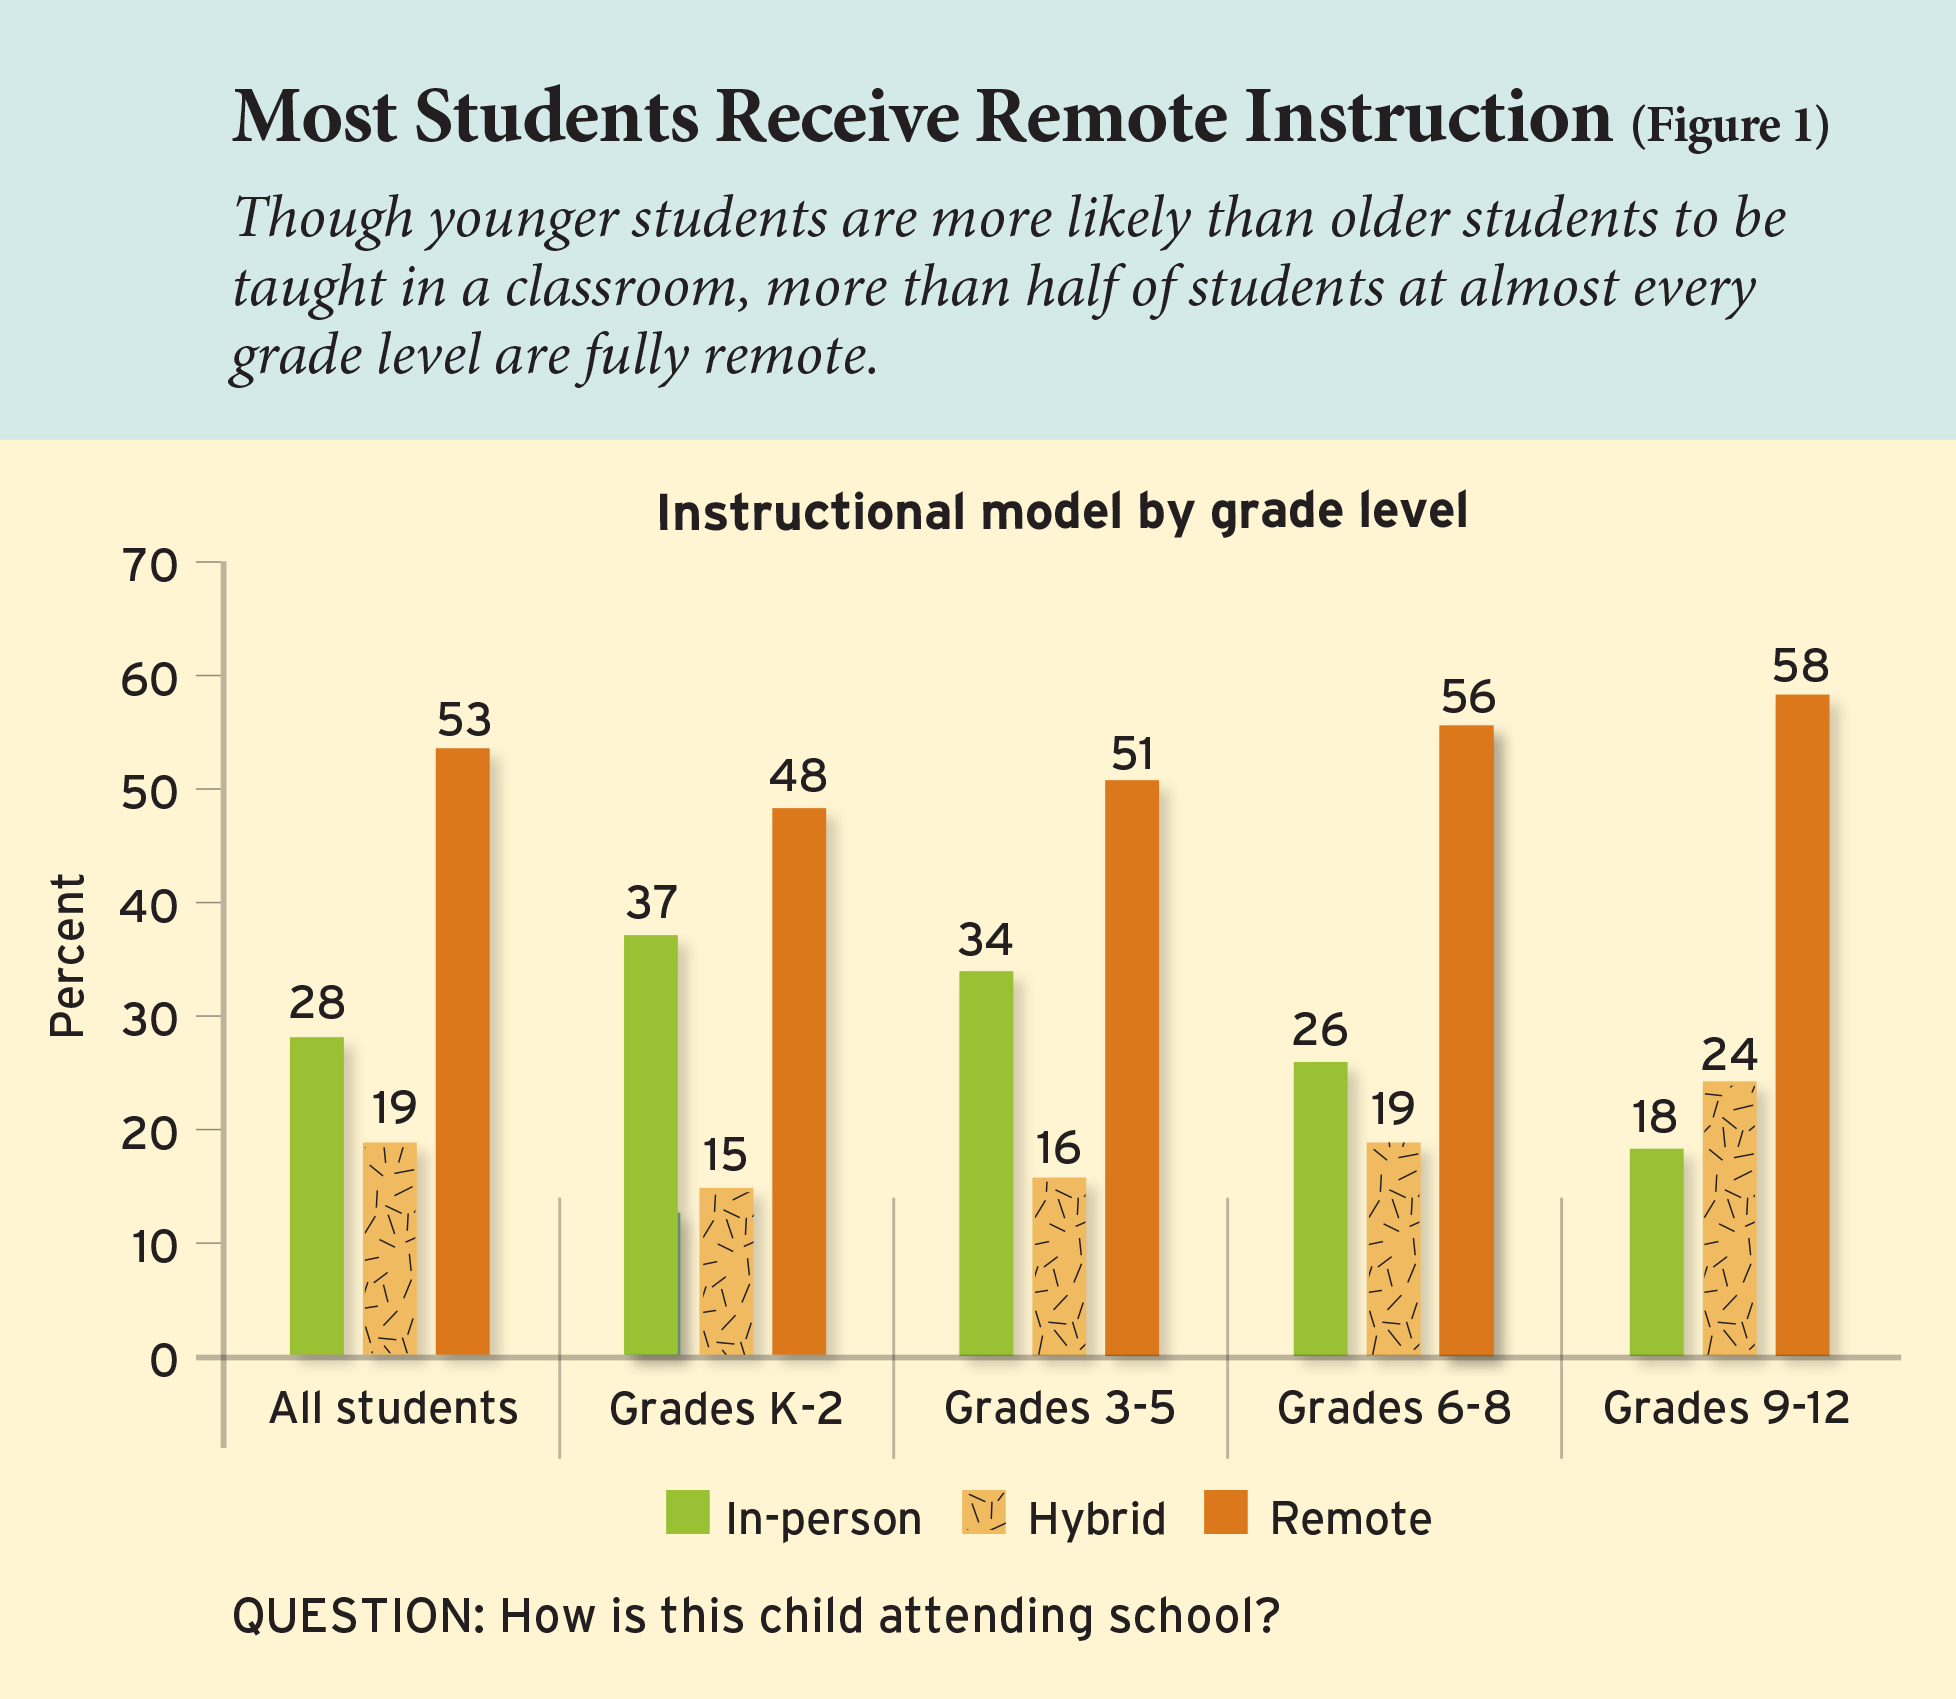 Most Students Receive Remote Instruction (Figure 1)